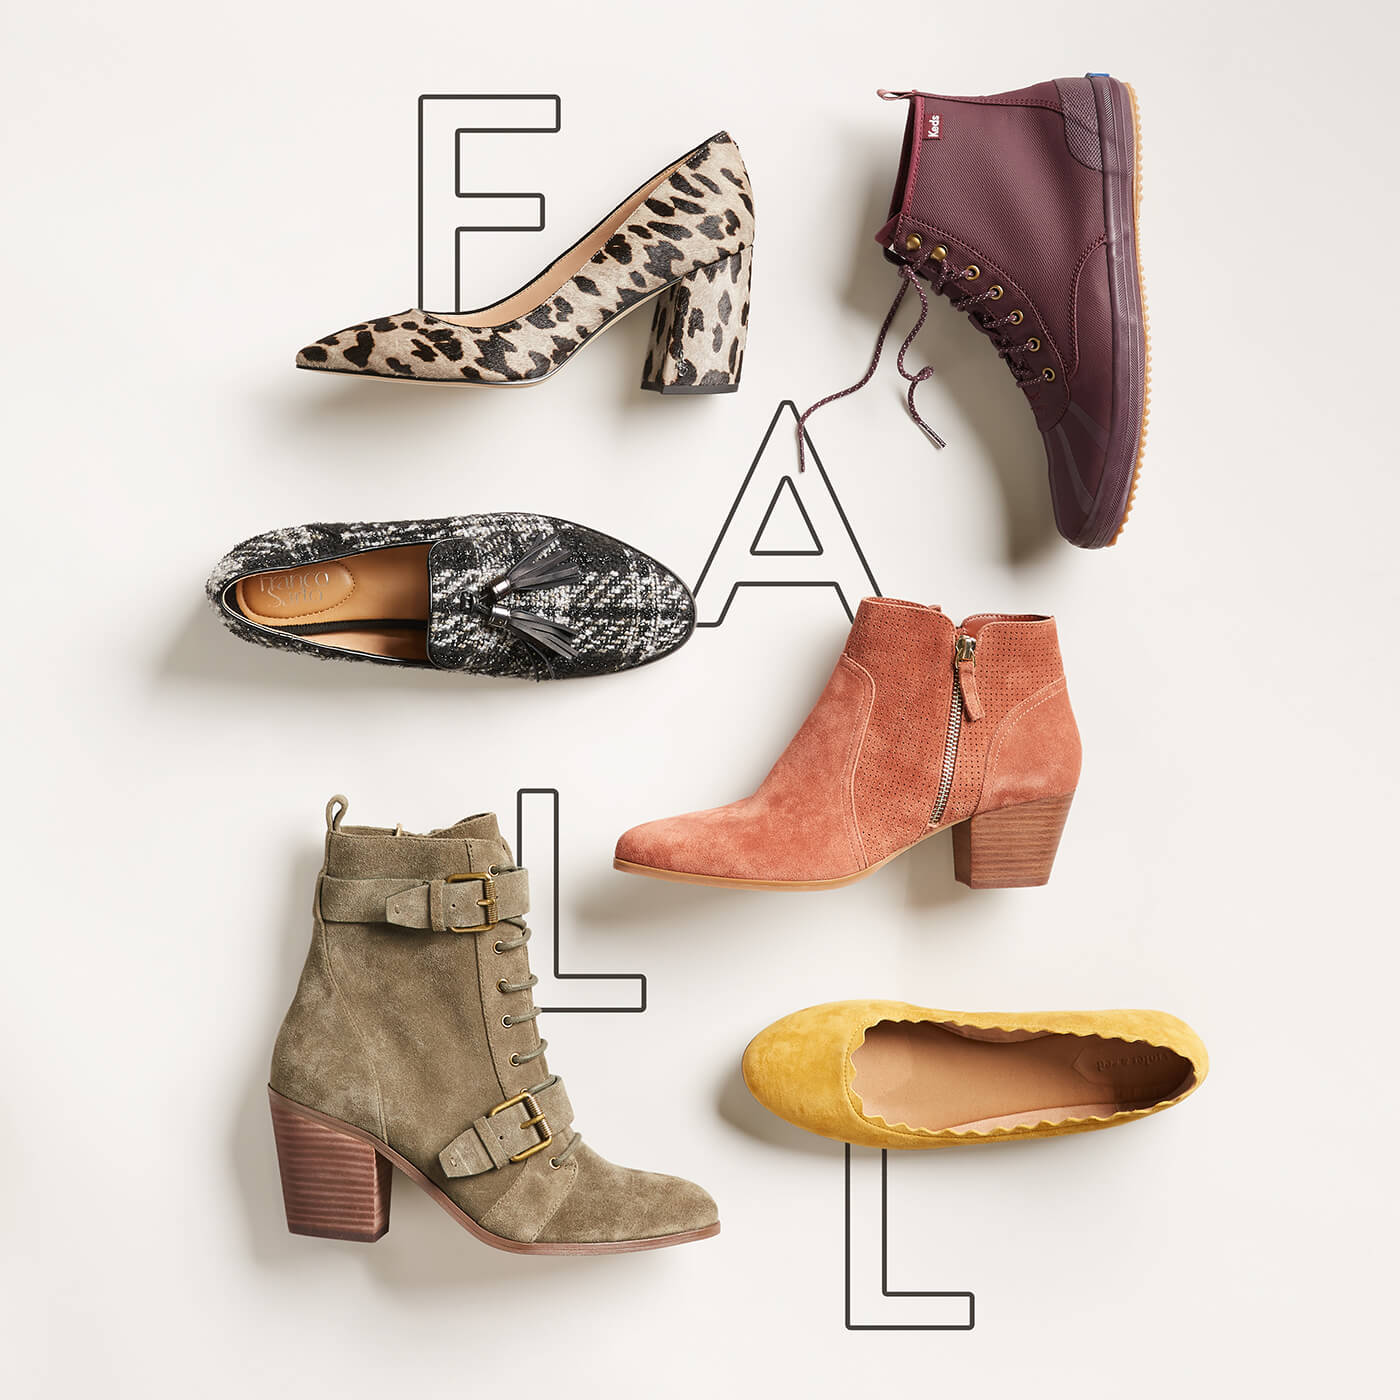 e4c210a9aac Our Favorite Fall Shoe Trends This Year